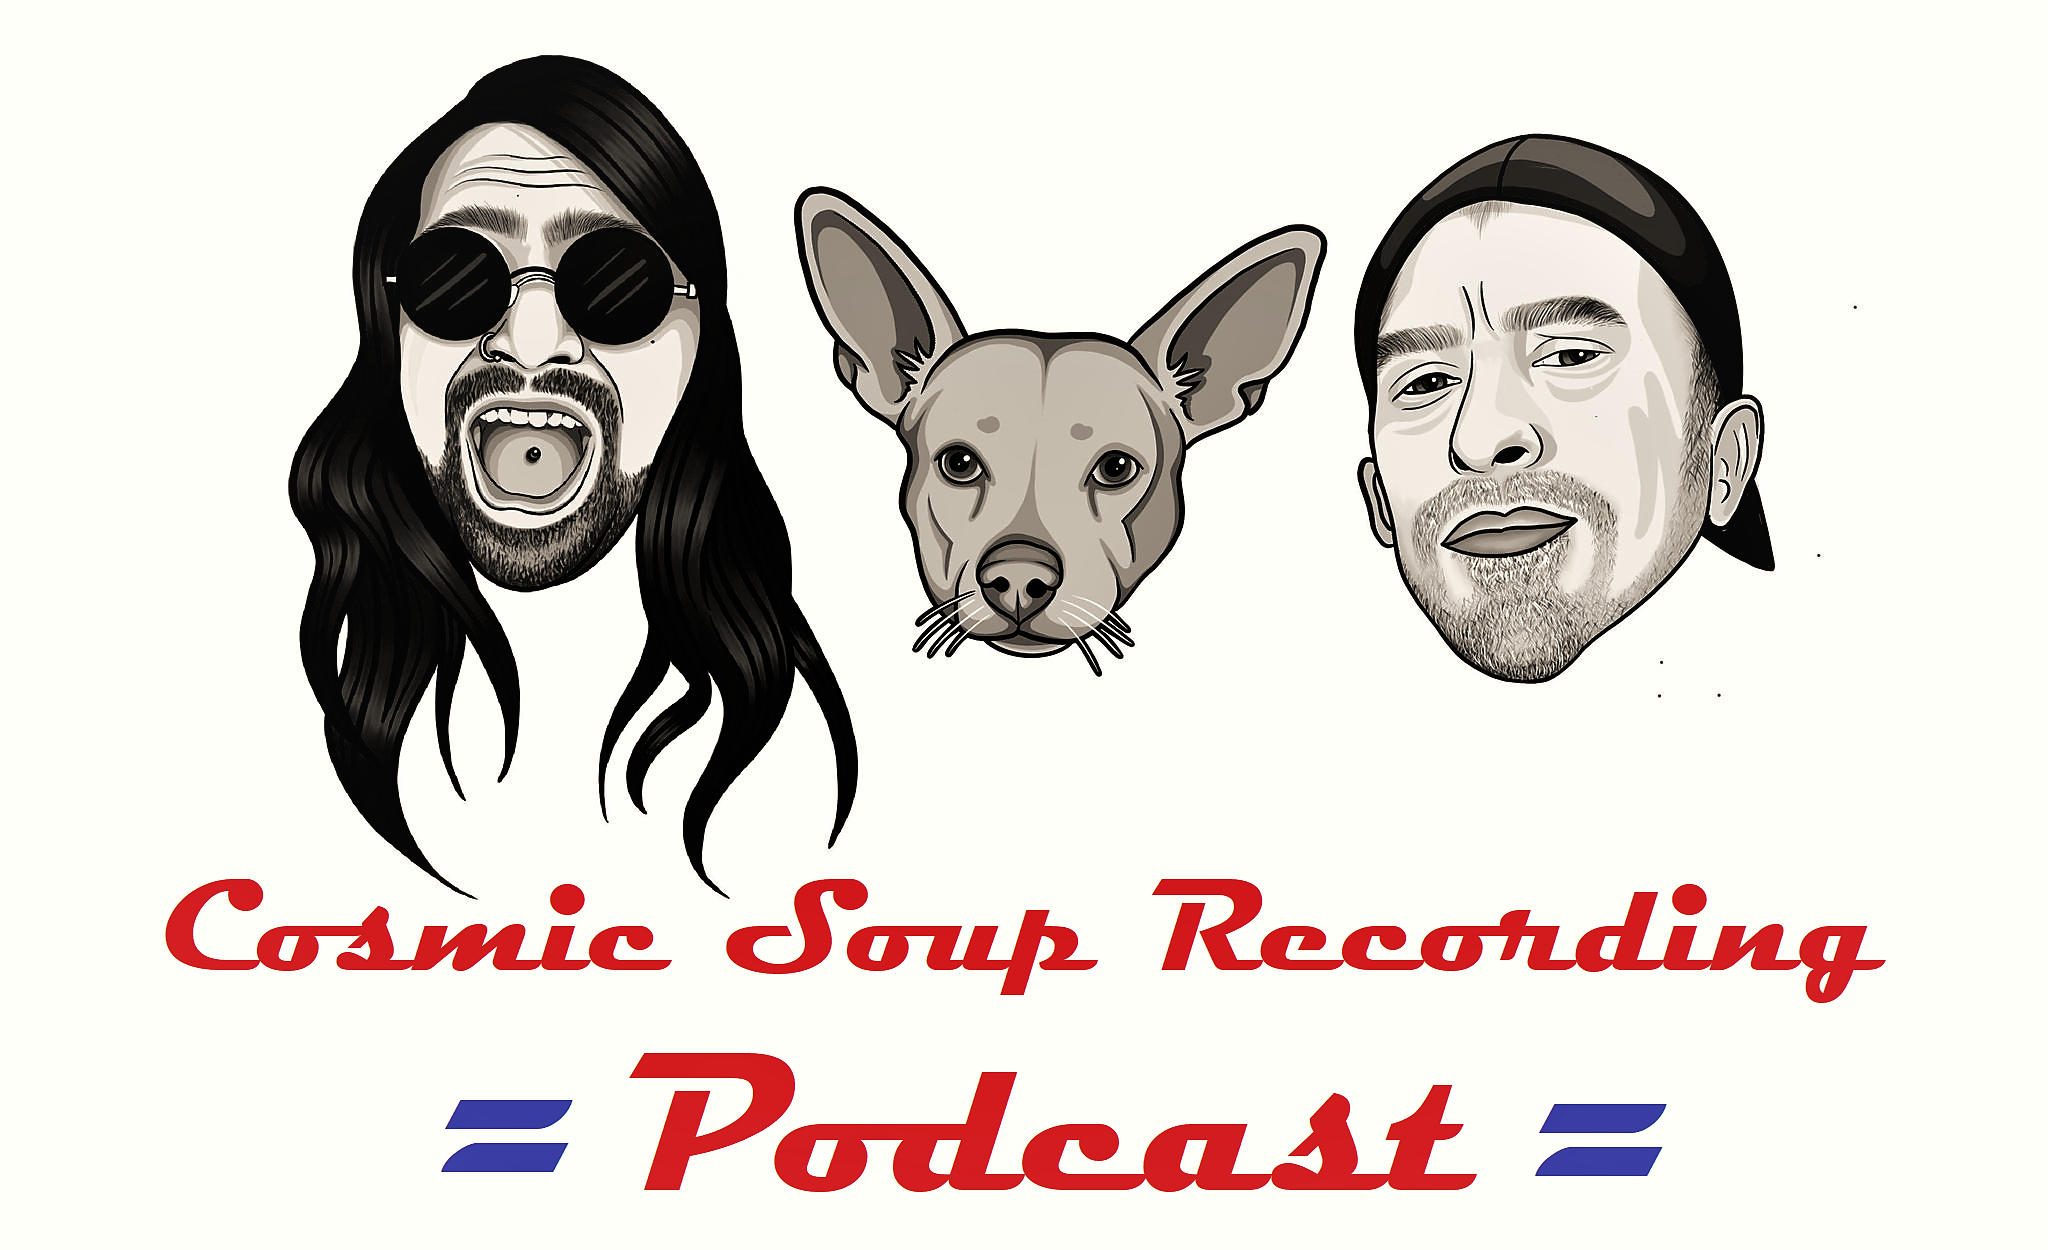 Cosmic Soup Recording Podcast